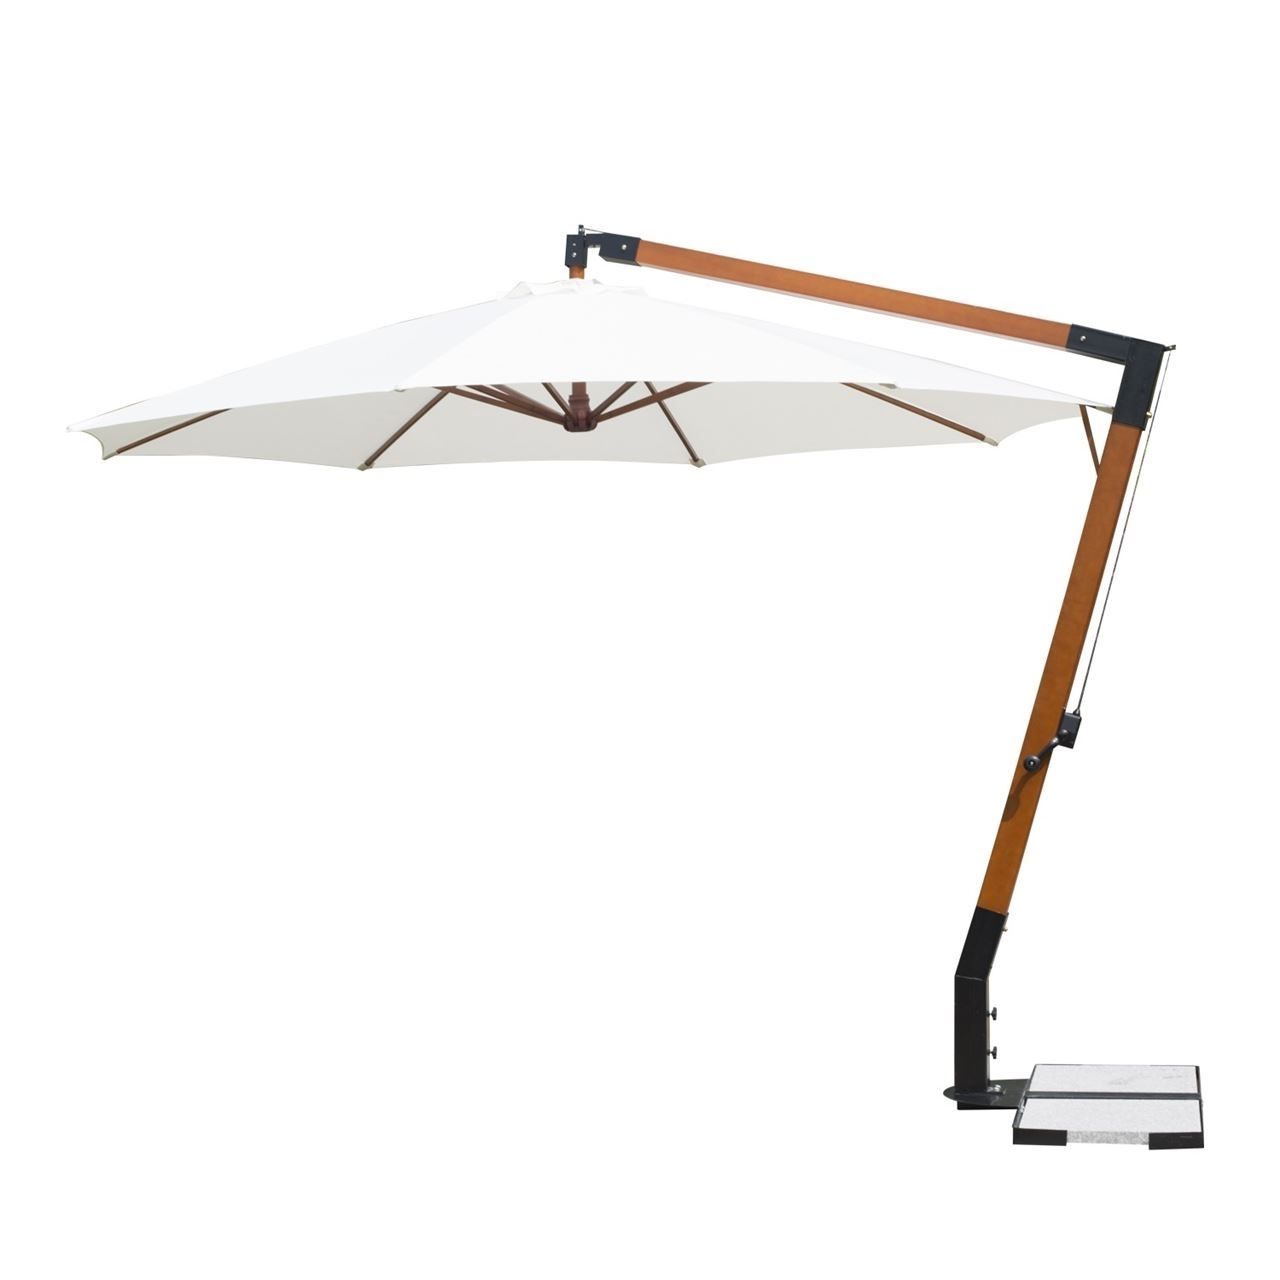 12' Wooden Hanging Offset Patio Umbrella With Throughout Well Known Hanging Offset Patio Umbrellas (View 18 of 20)